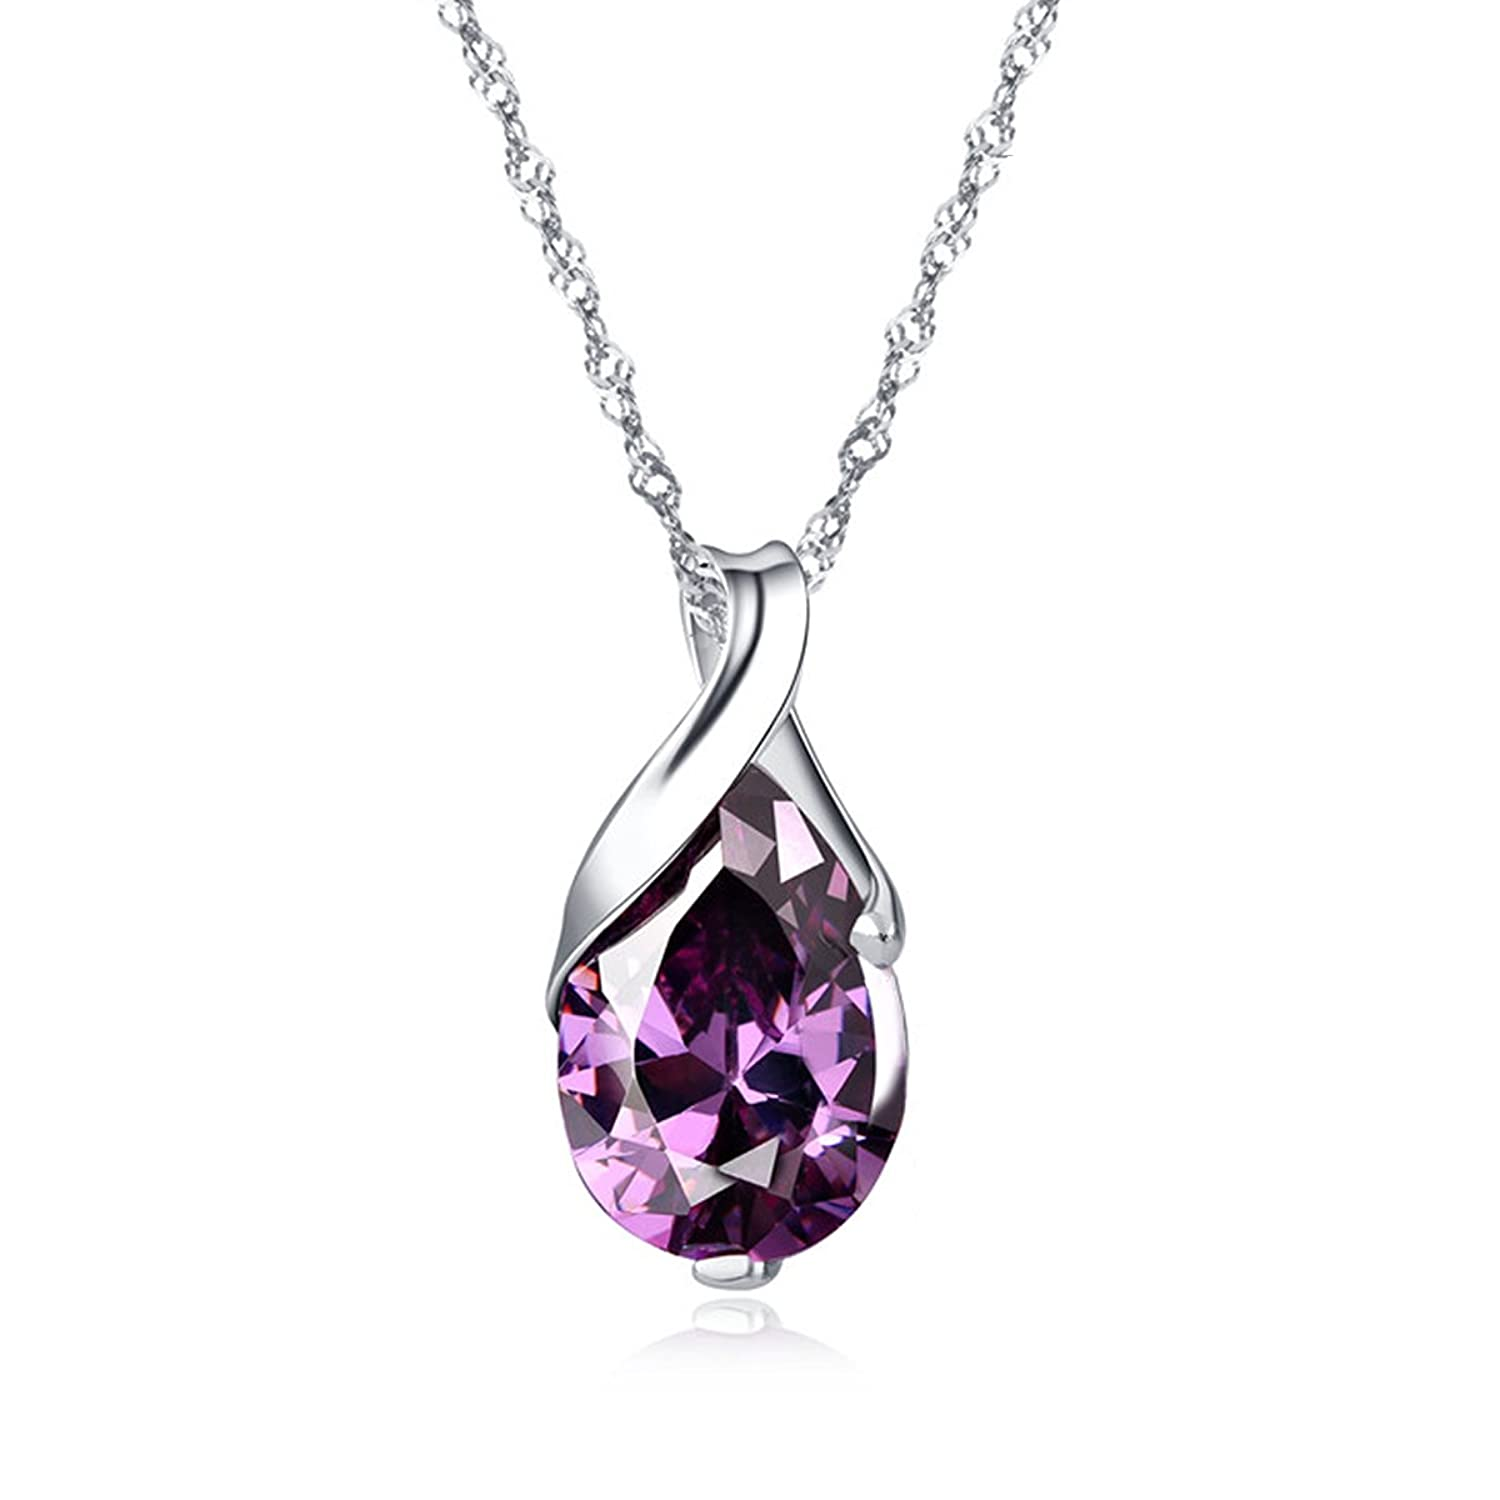 Golden sterling silver pendant necklace silver natural amethyst golden sterling silver pendant necklace silver natural amethyst necklace 18 drop shape supplied in a gift box hjs002 amazon jewellery aloadofball Gallery